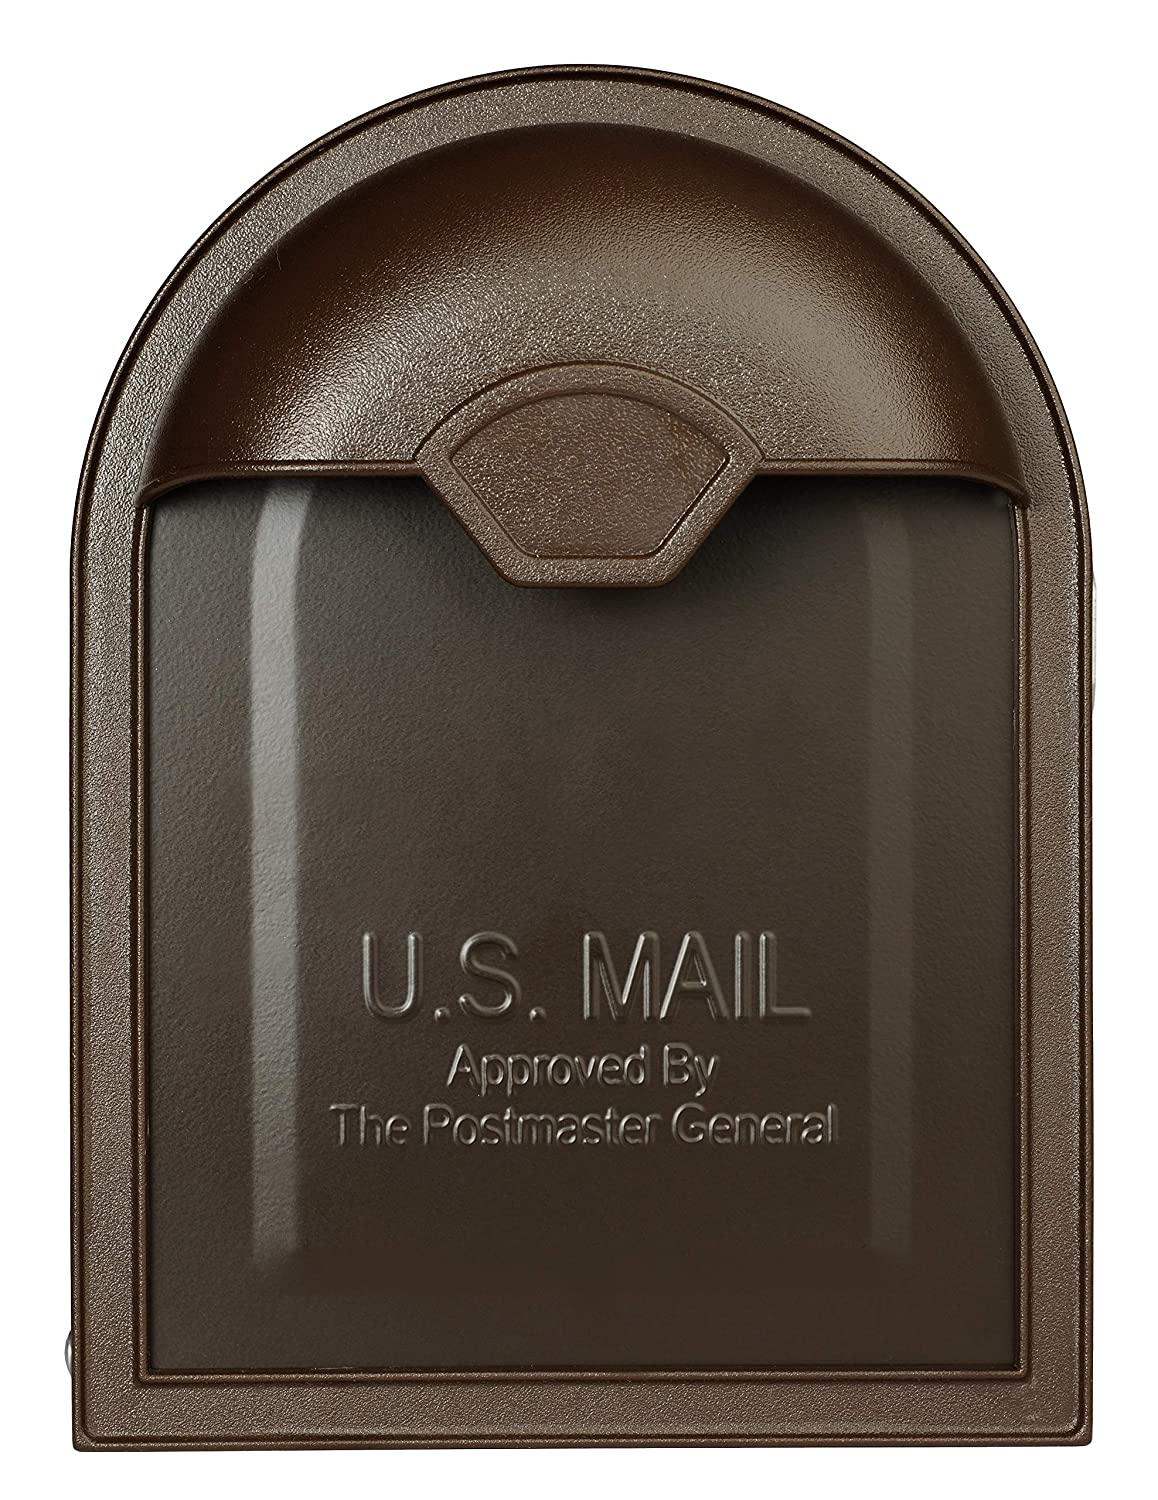 Architectural Mailboxes 8830RZ-10 Winston Post Mount Mailbox Rubbed Bronze Rubbed Bronze